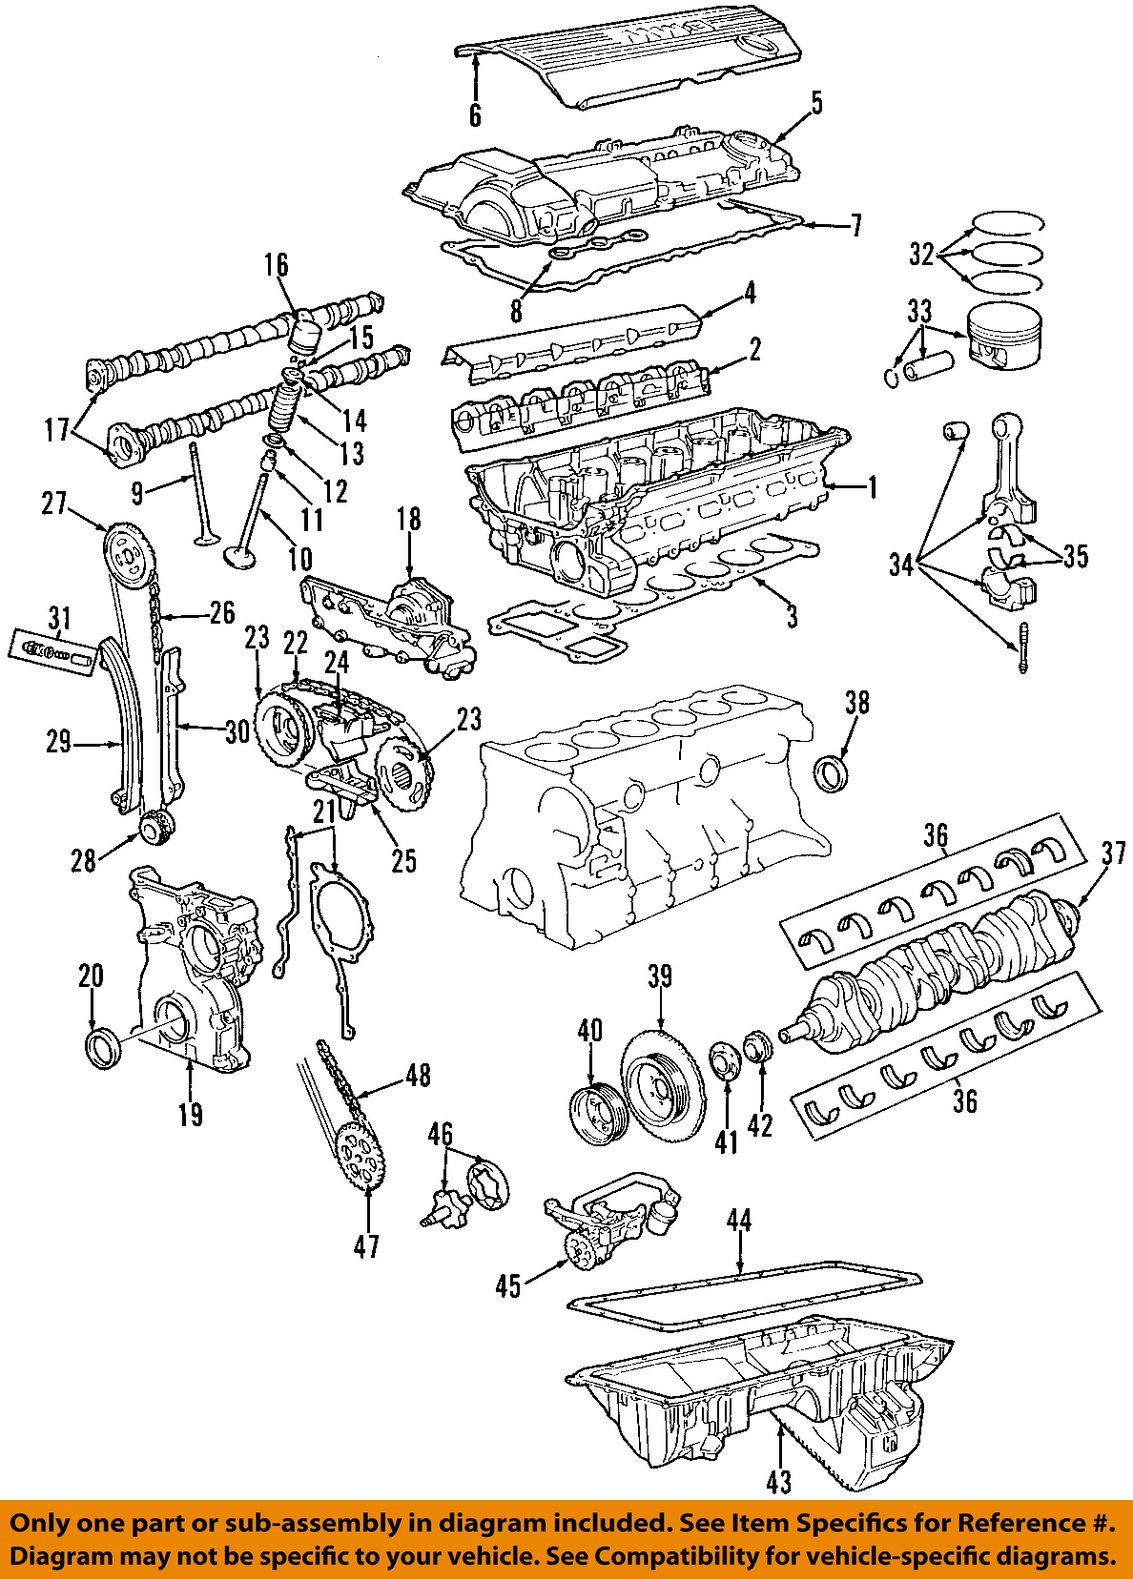 1994 bmw 325i engine diagram wiring schematic diagram bmw e50 2003 bmw 325i engine diagram wiring